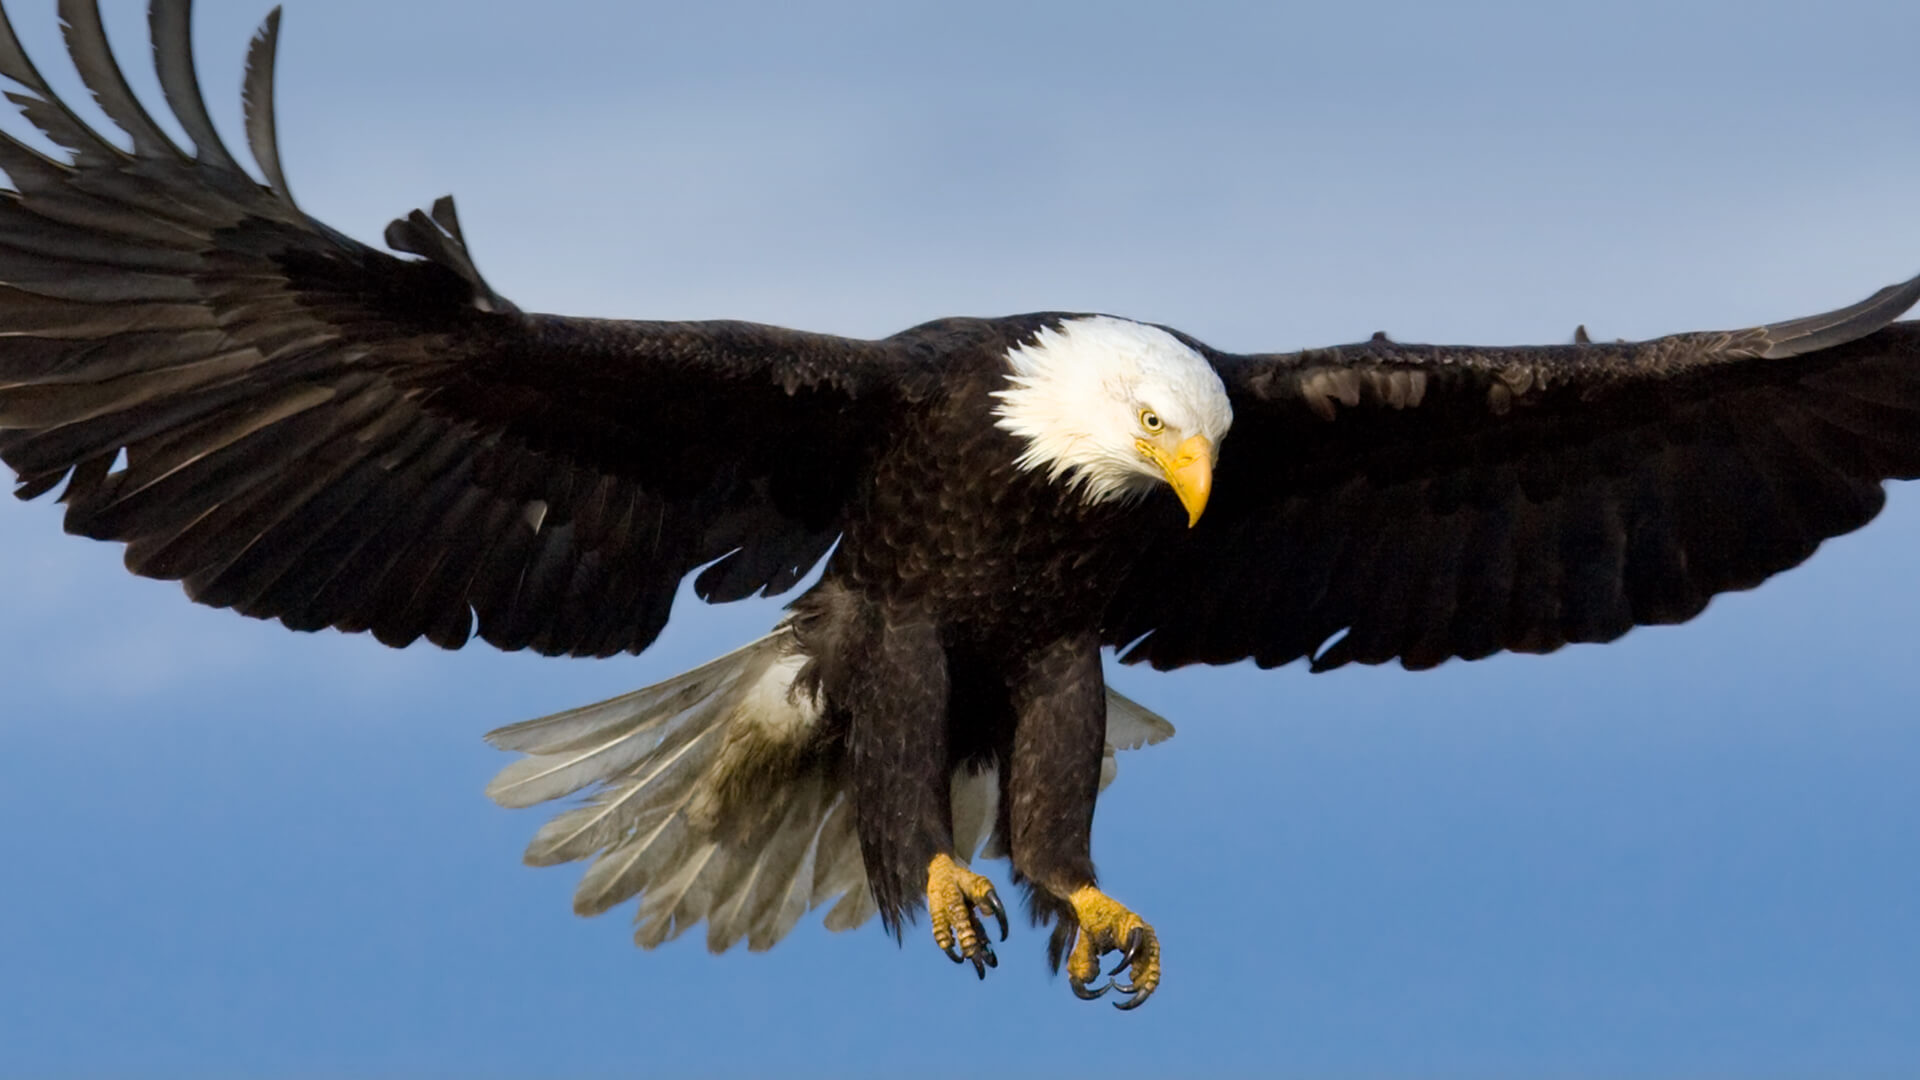 Bald-Eagle-Pic-1920-1080-wallpaper-wpc9202737